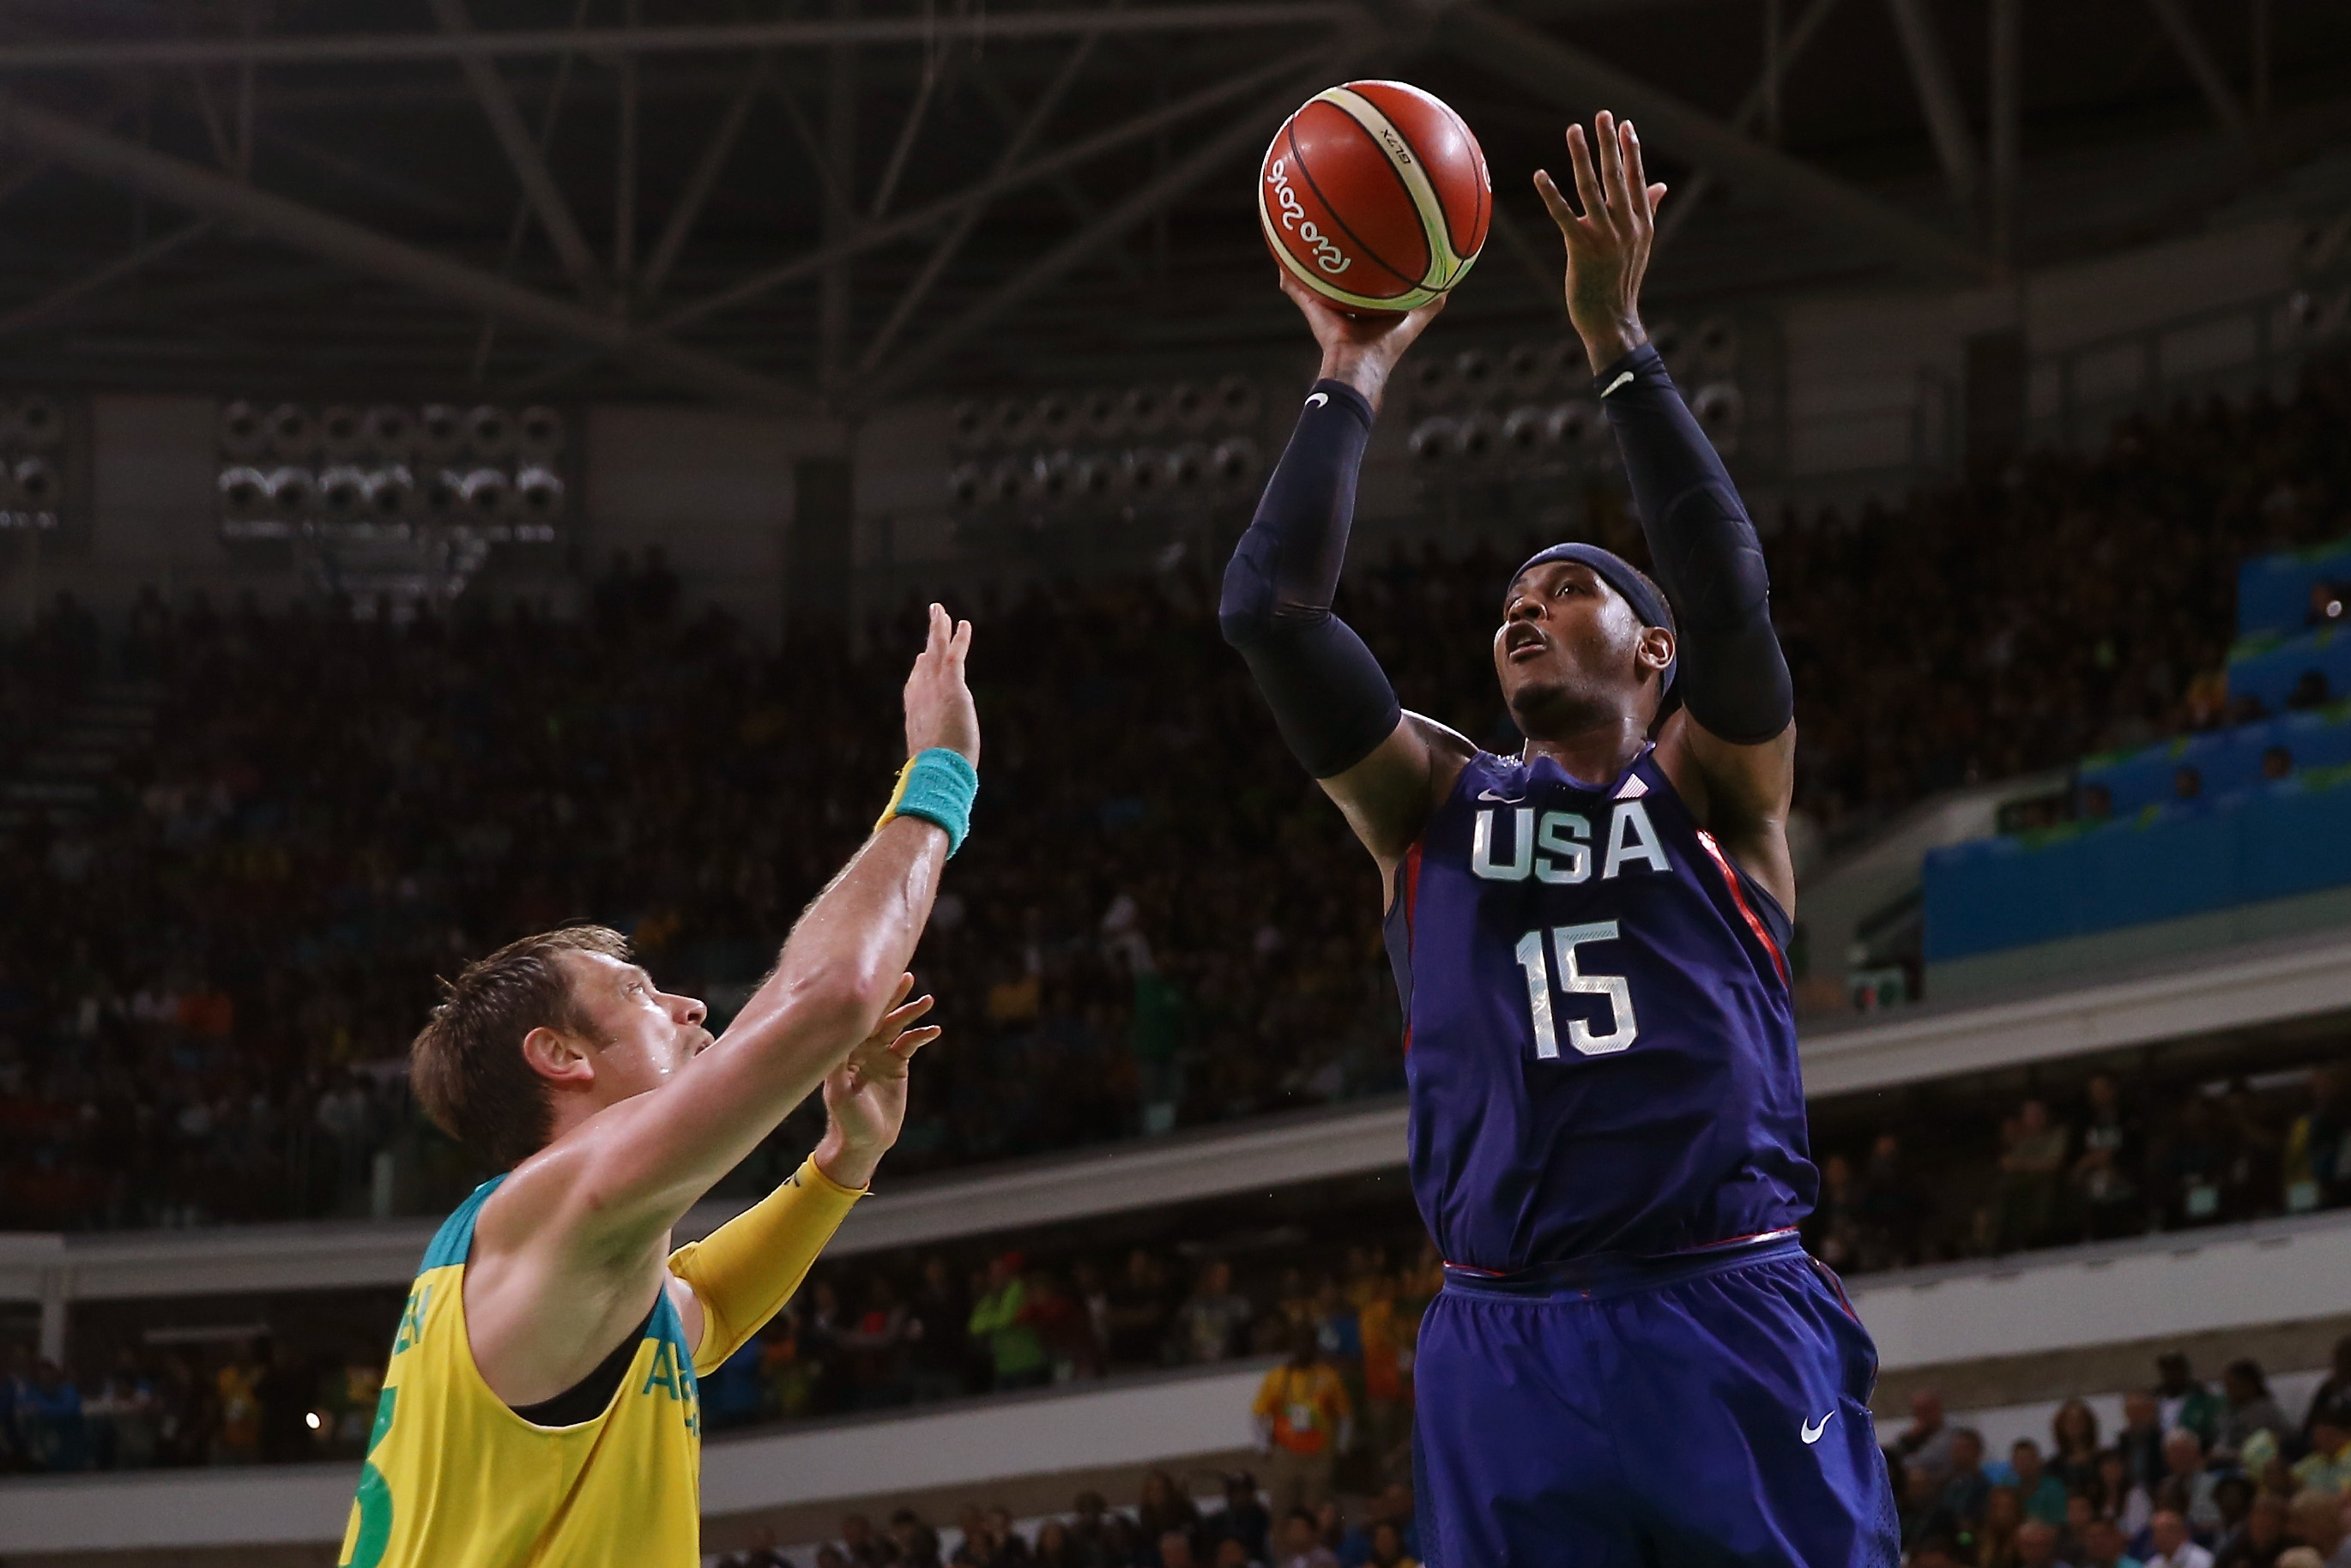 Carmelo Anthony of U.S. shoots over David Andersen of Australia on Day 5 of the Rio 2016 Olympic Games on August 10, 2016 in Rio de Janeiro, Brazil.